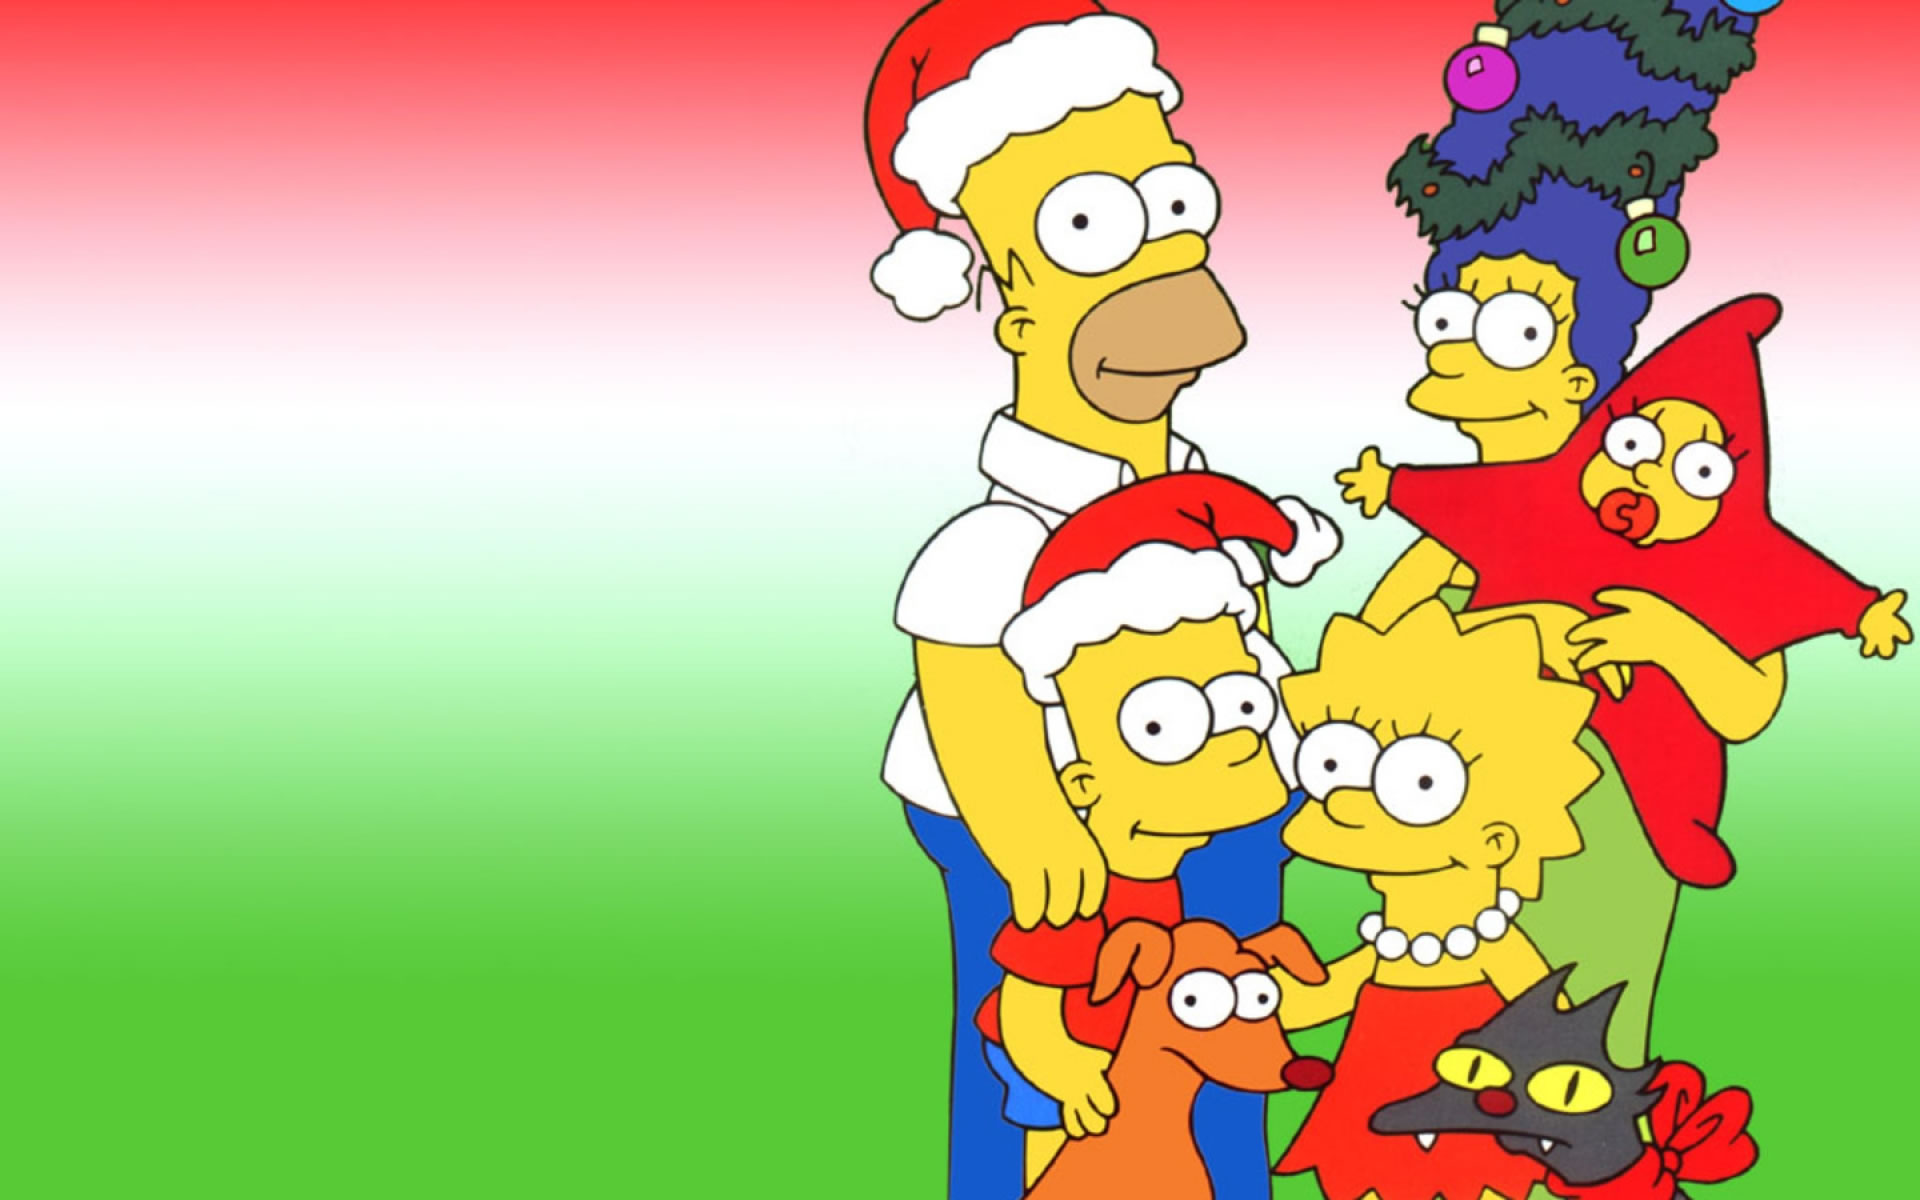 The Simpsons Christmas Wallpapers. - Wallpapers - Wallpapers